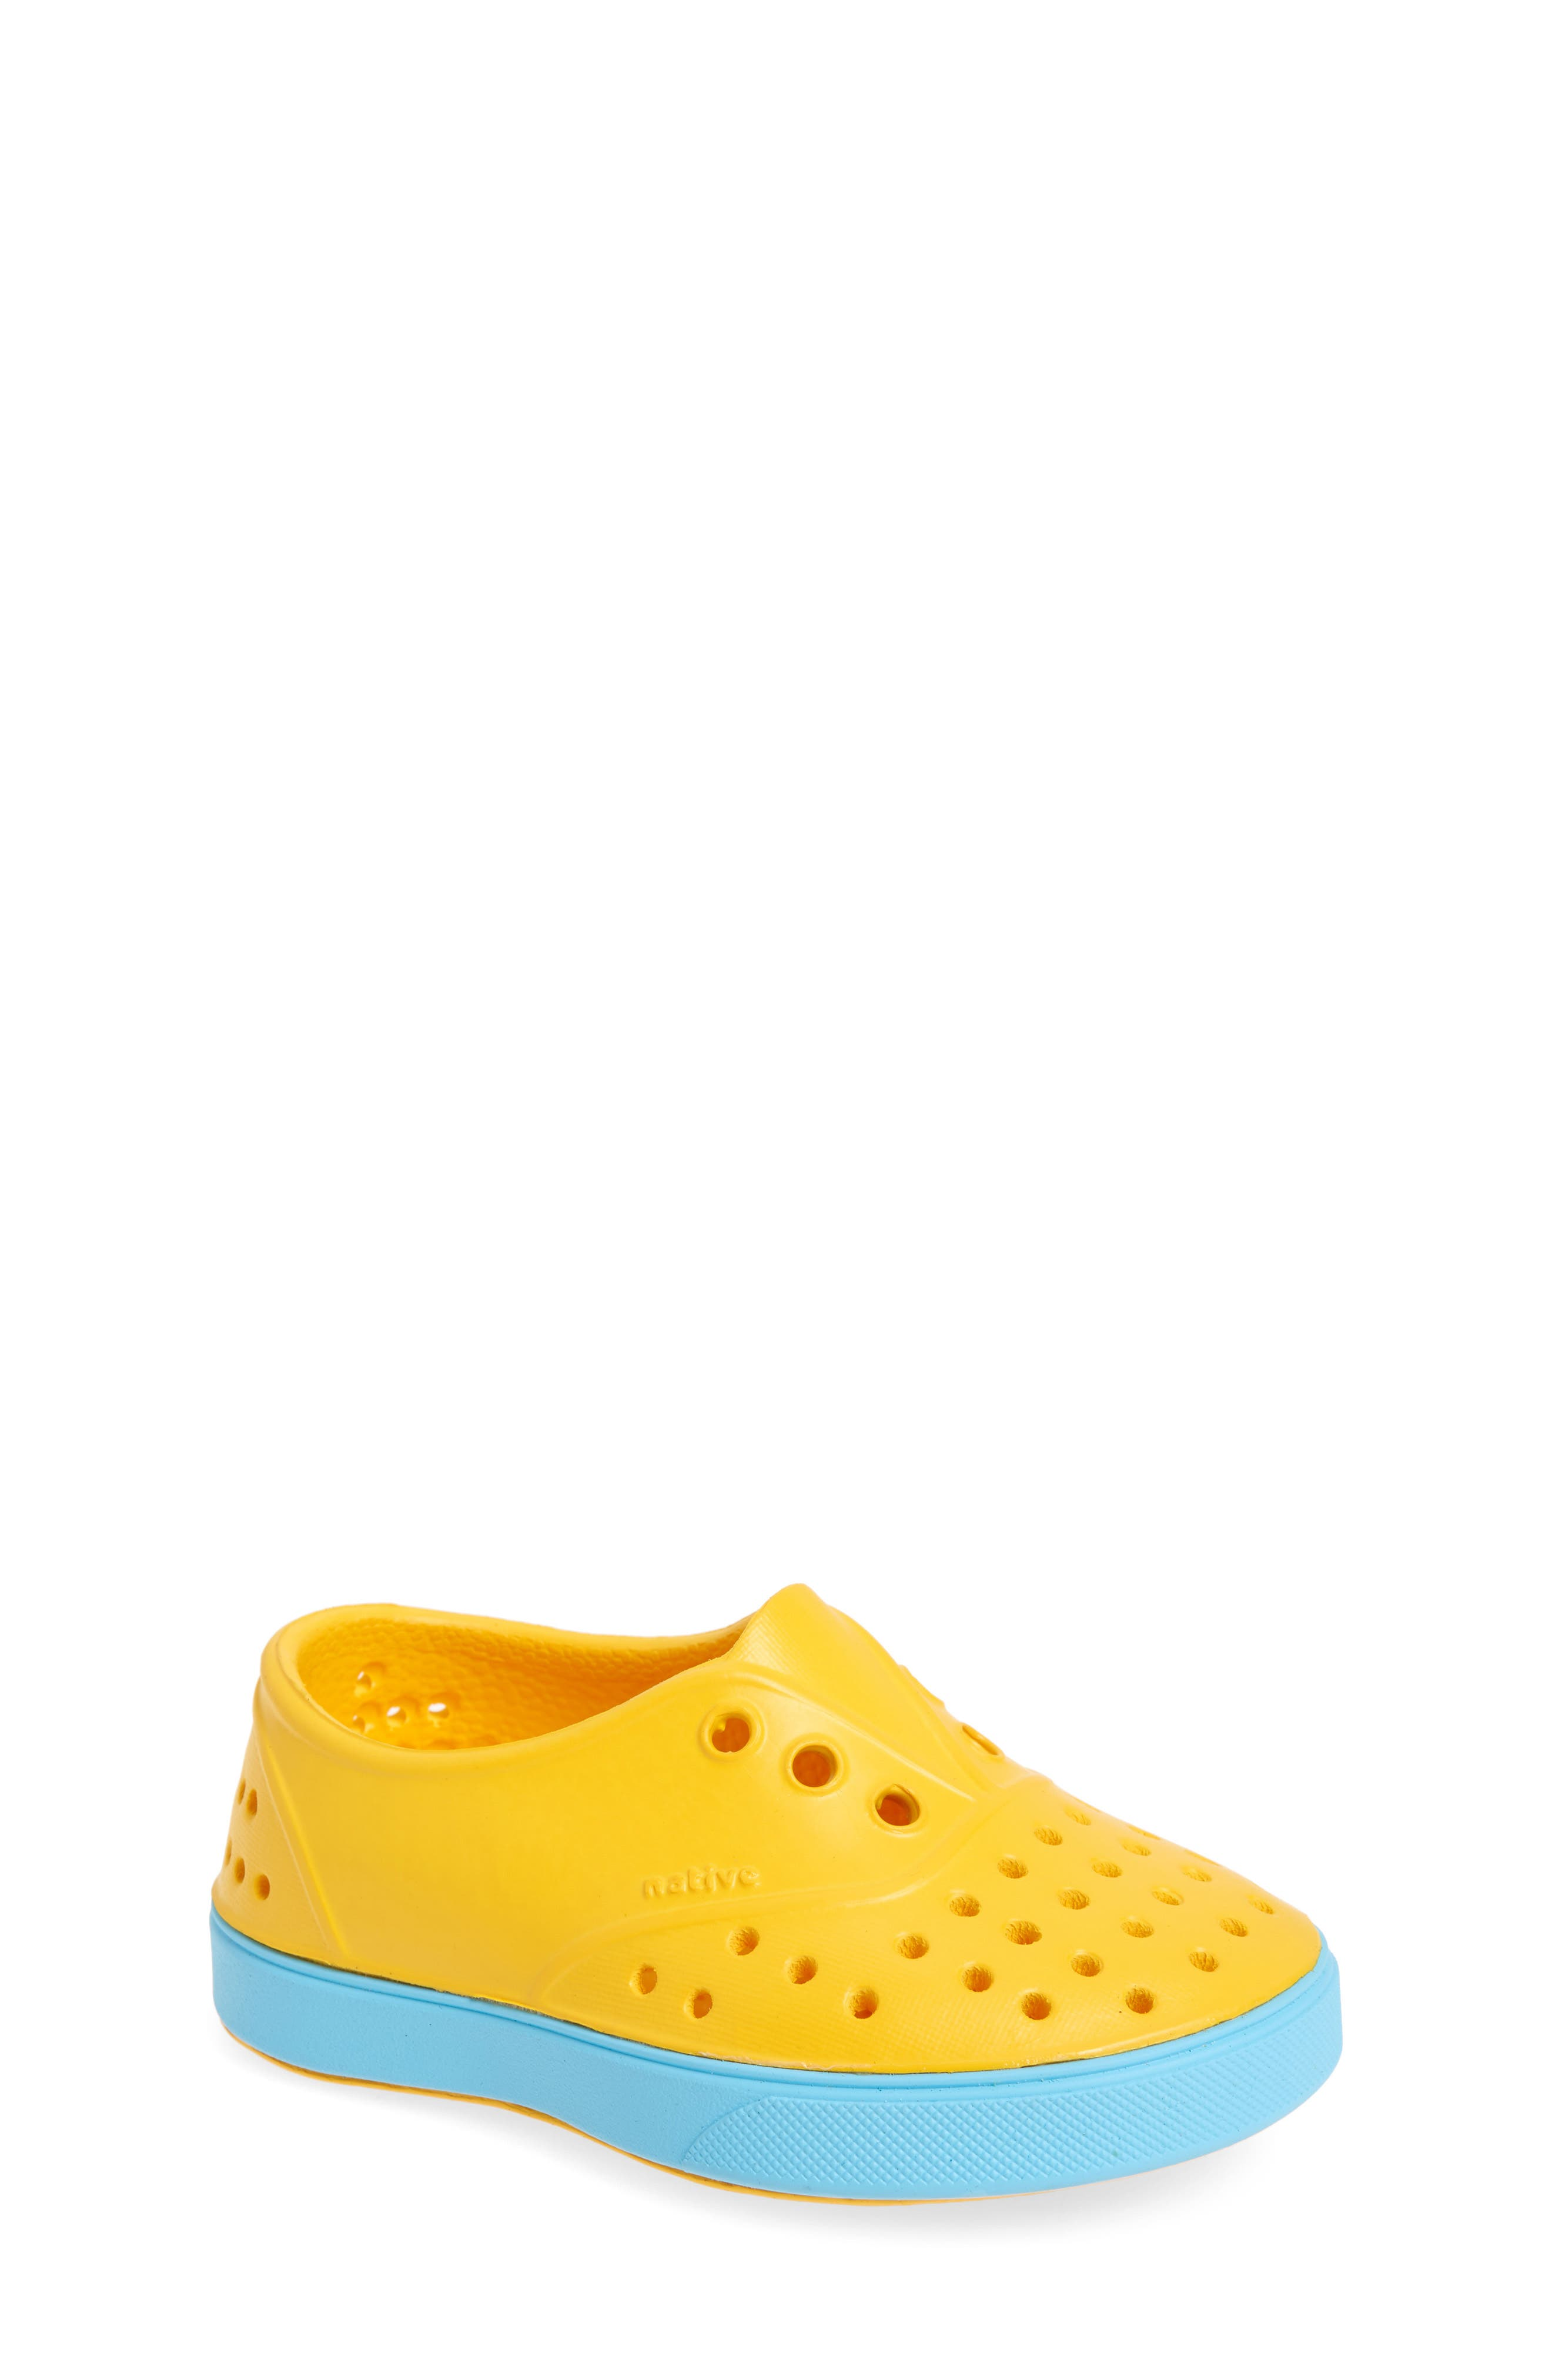 Miller Water Friendly Slip-On Sneaker,                             Main thumbnail 1, color,                             Yellow/ Surfer Blue